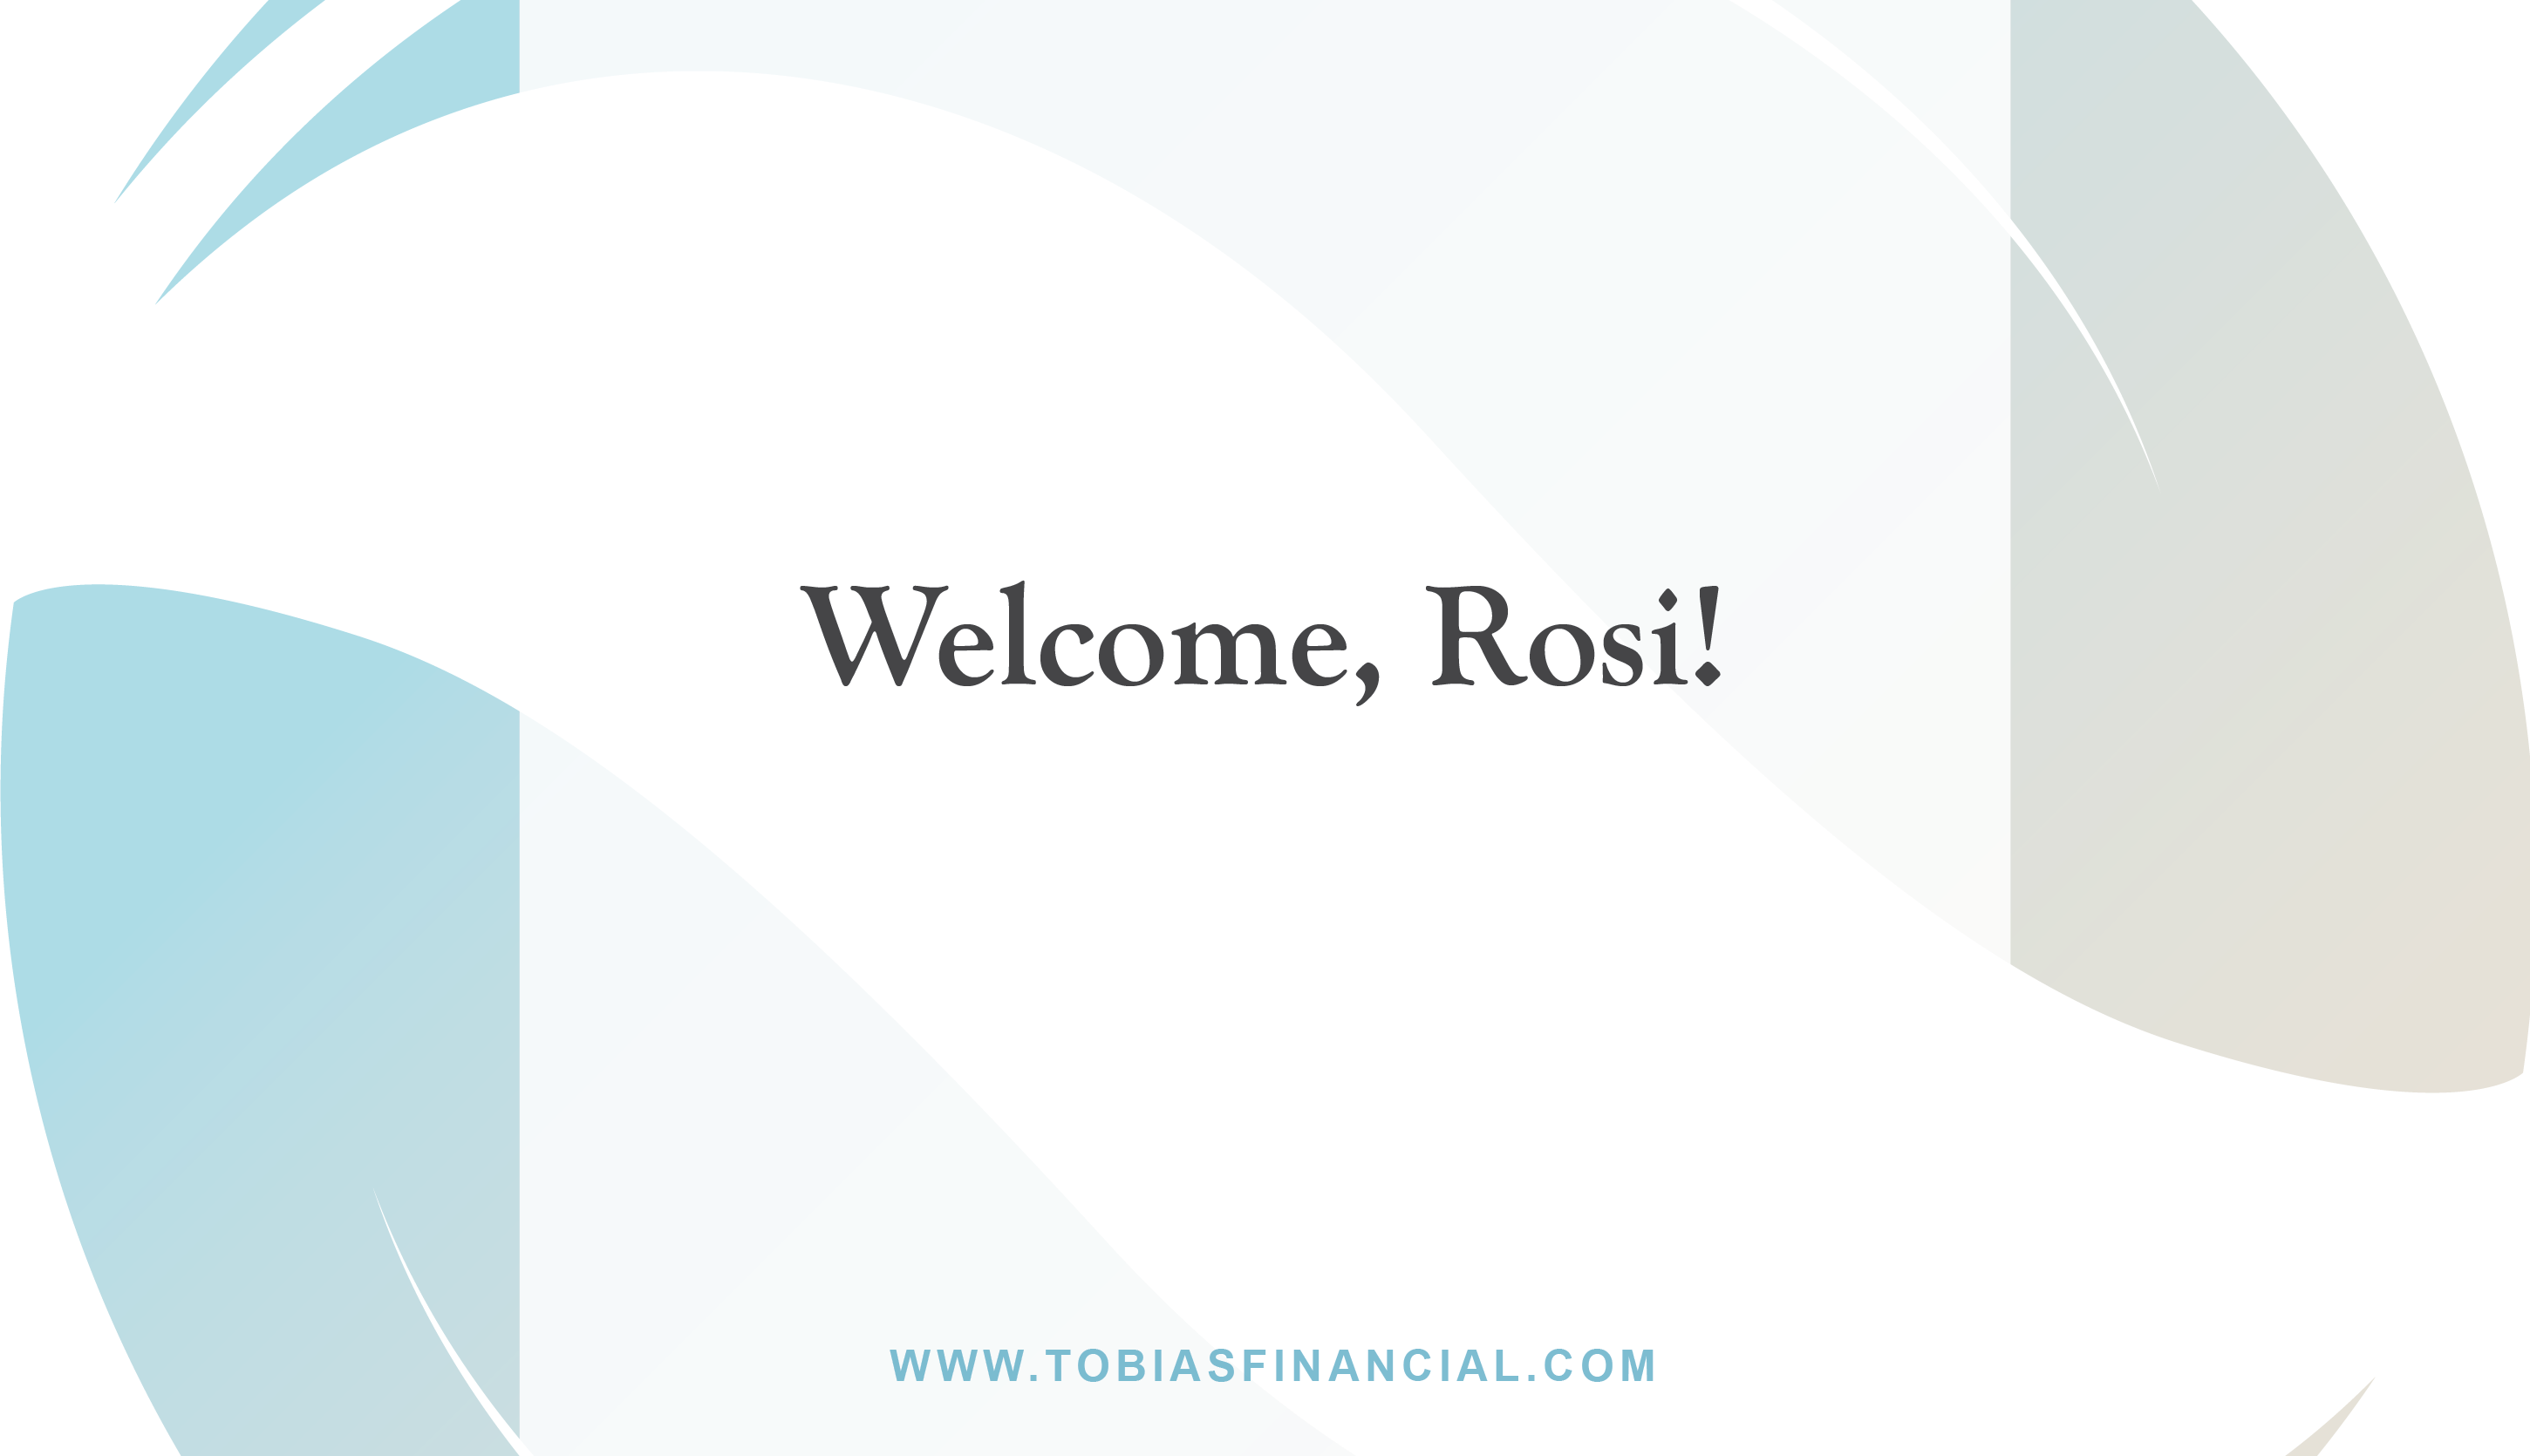 Welcome, Rosi!